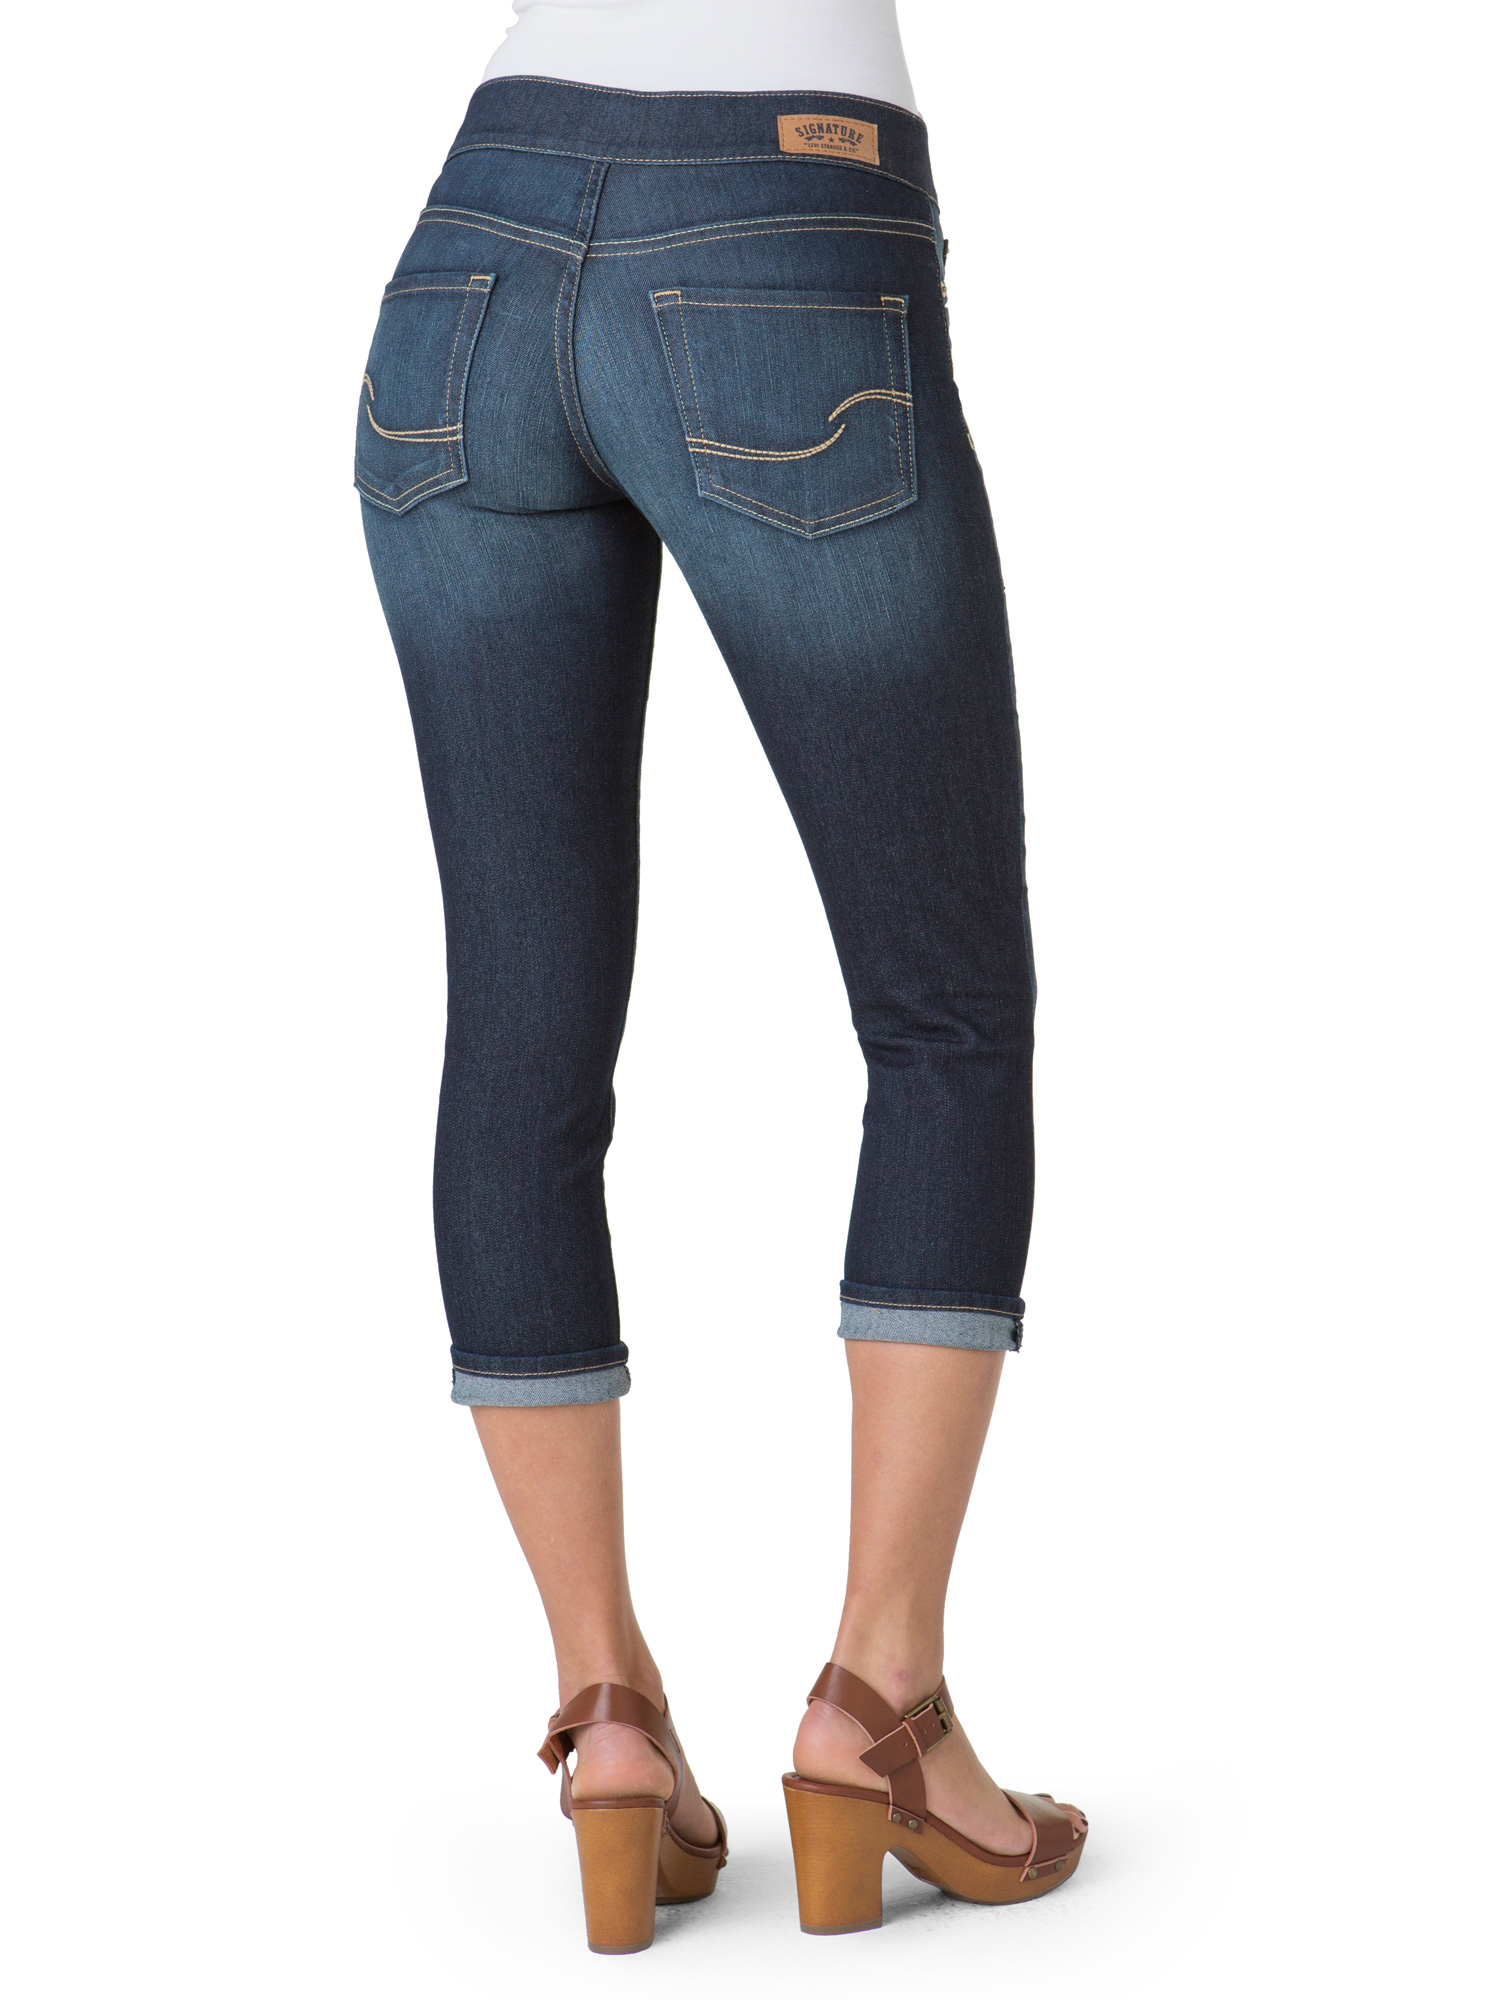 26f61a47ddef9 Signature by levi strauss & co. - Women's Marissa Pull On Capri ...